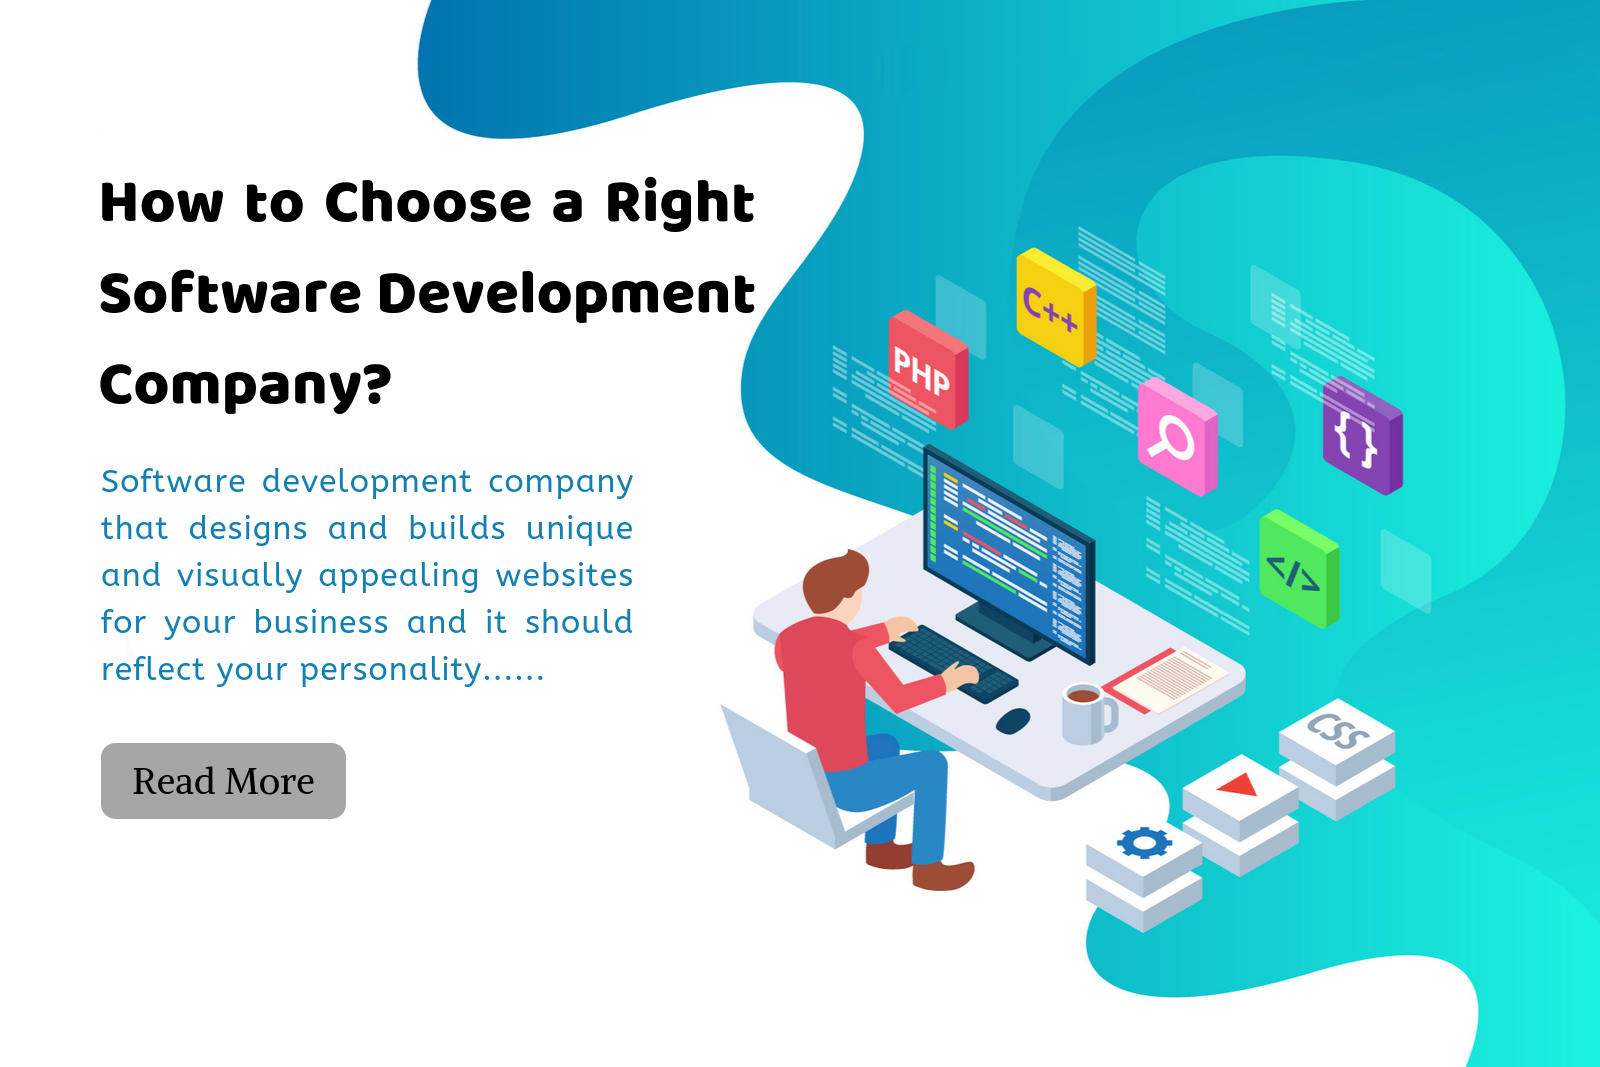 How to Choose a Right Software Development Company?